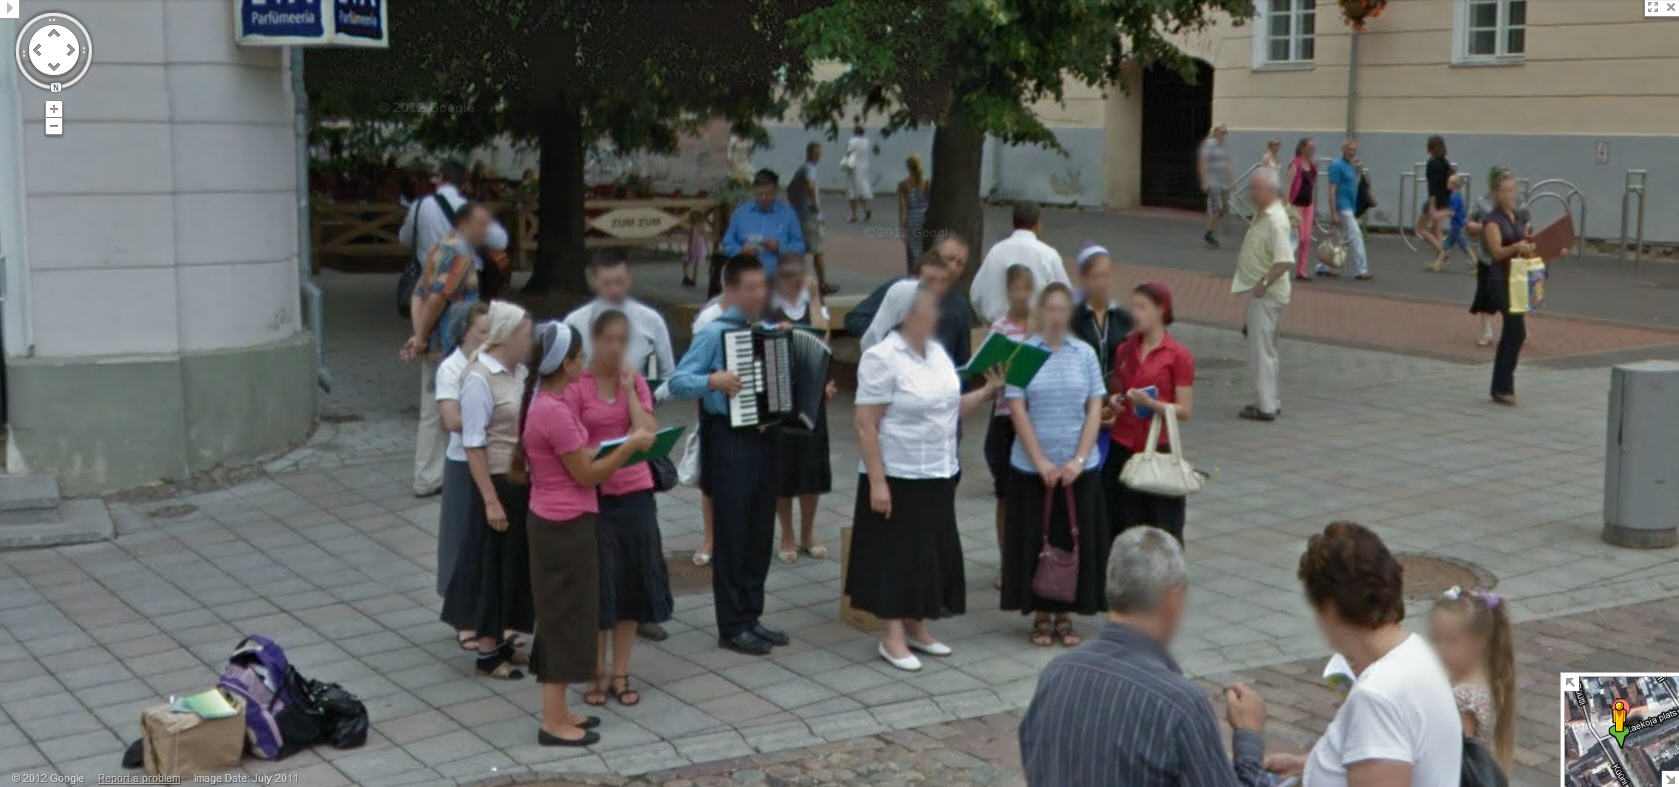 google-street-view-captures-a-good-old-accordian-accompanied-choir-in-estonia